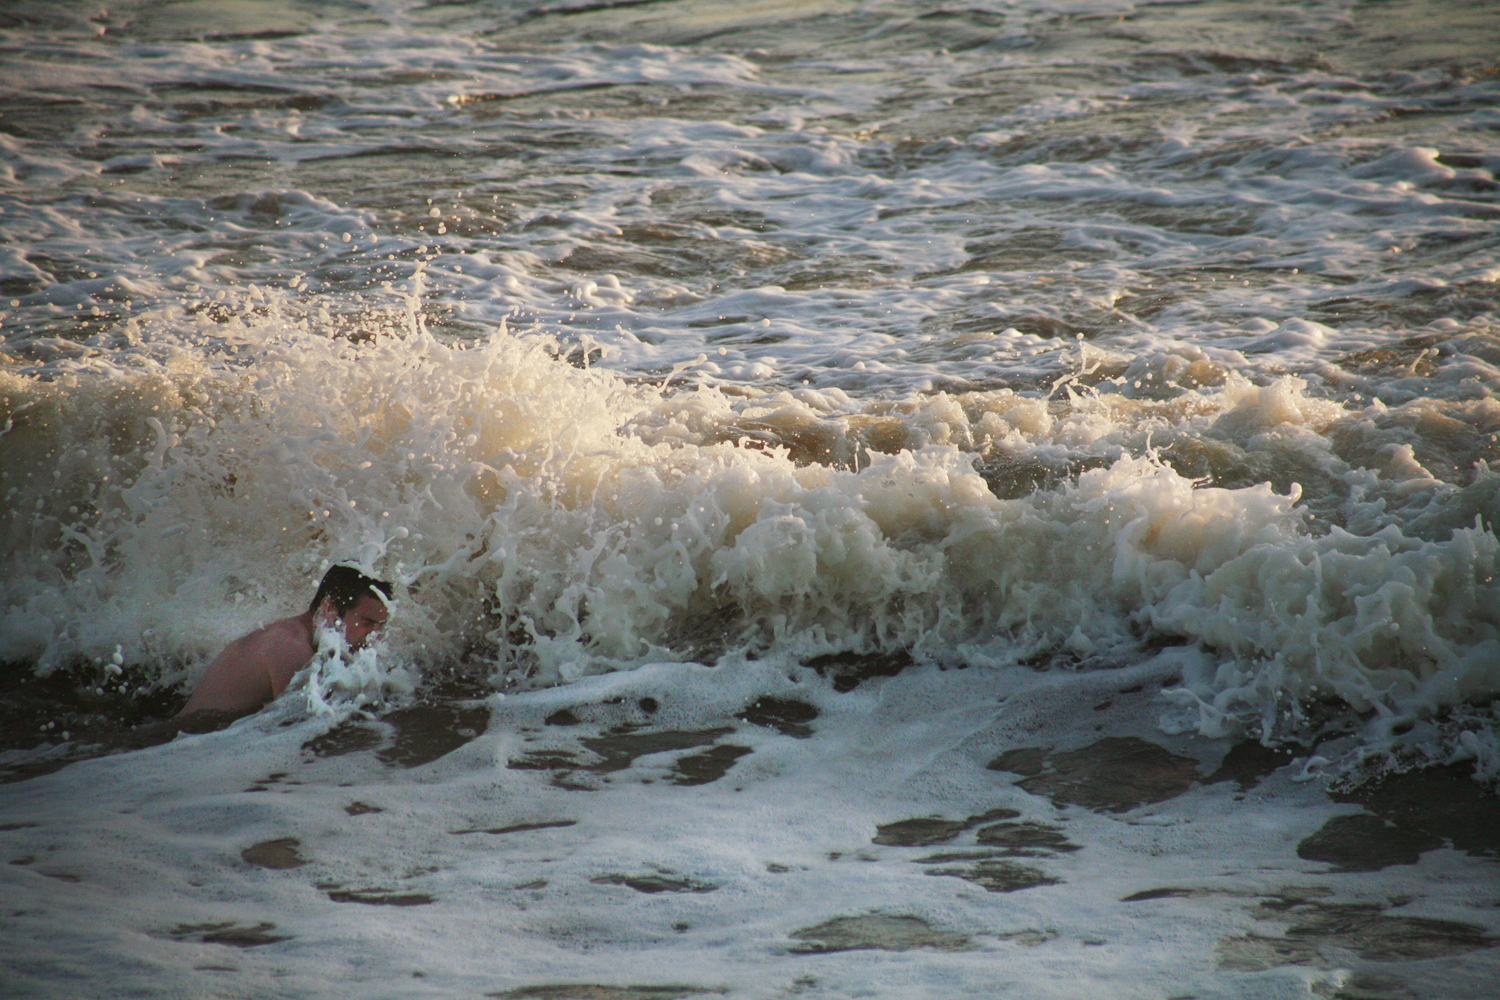 A documentary photograph of a man swimming in the ocean in Ireland